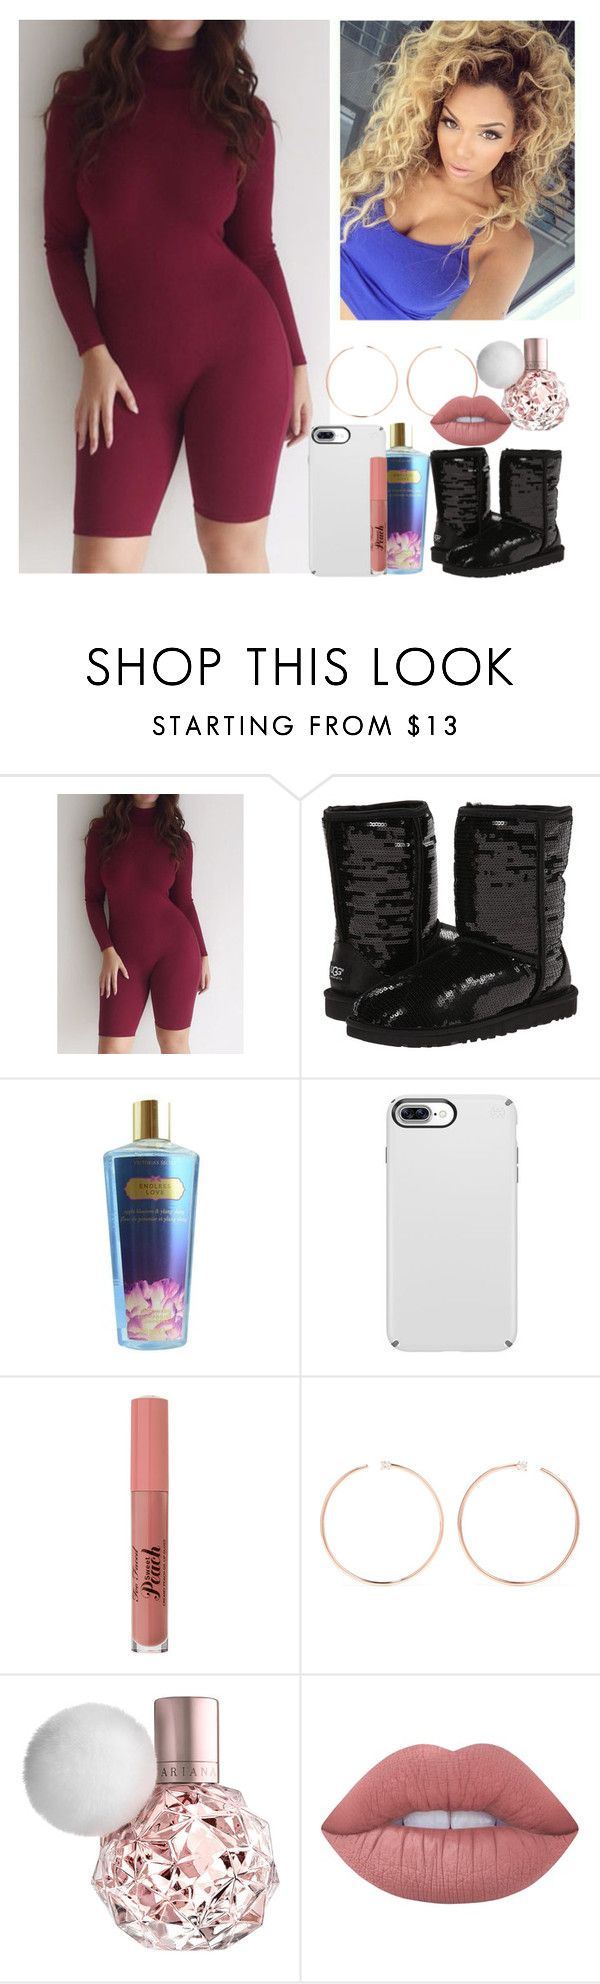 """""""Block Game Strong Asf Lmao"""" by melaninmonroee ❤ liked on Polyvore featuring UGG Australia, Victoria's Secret, Anita Ko and Lime Crime"""